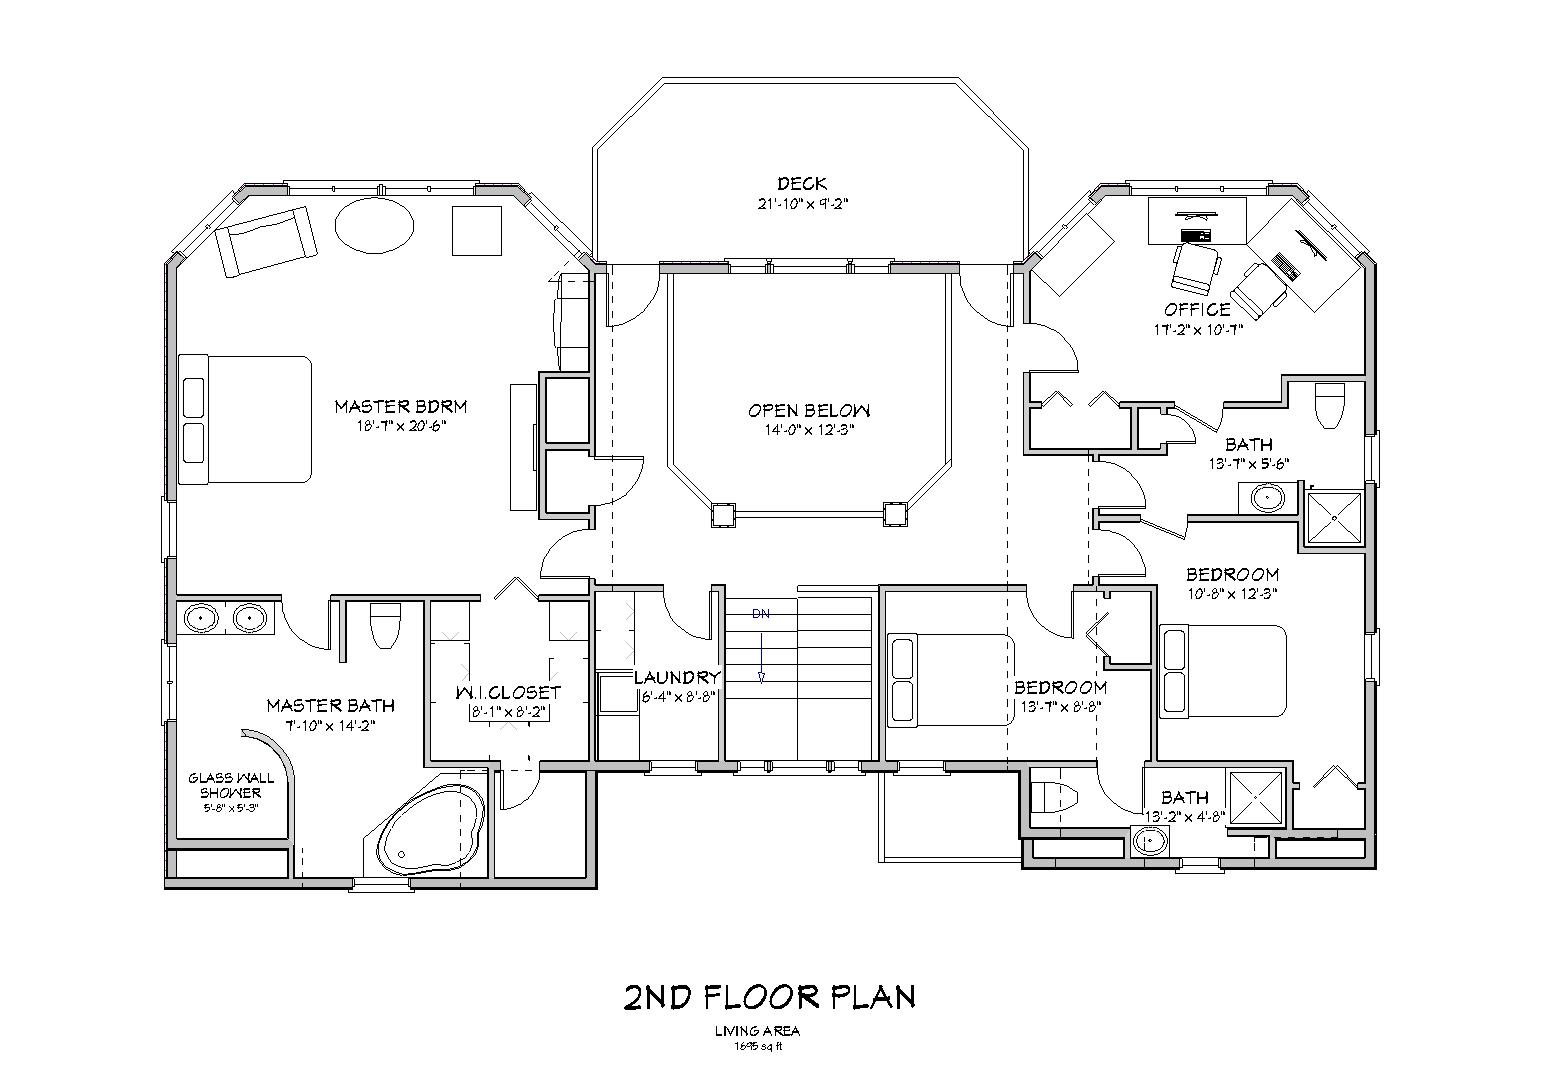 Beach House Plan 2nd Floor (View 3 of 10)